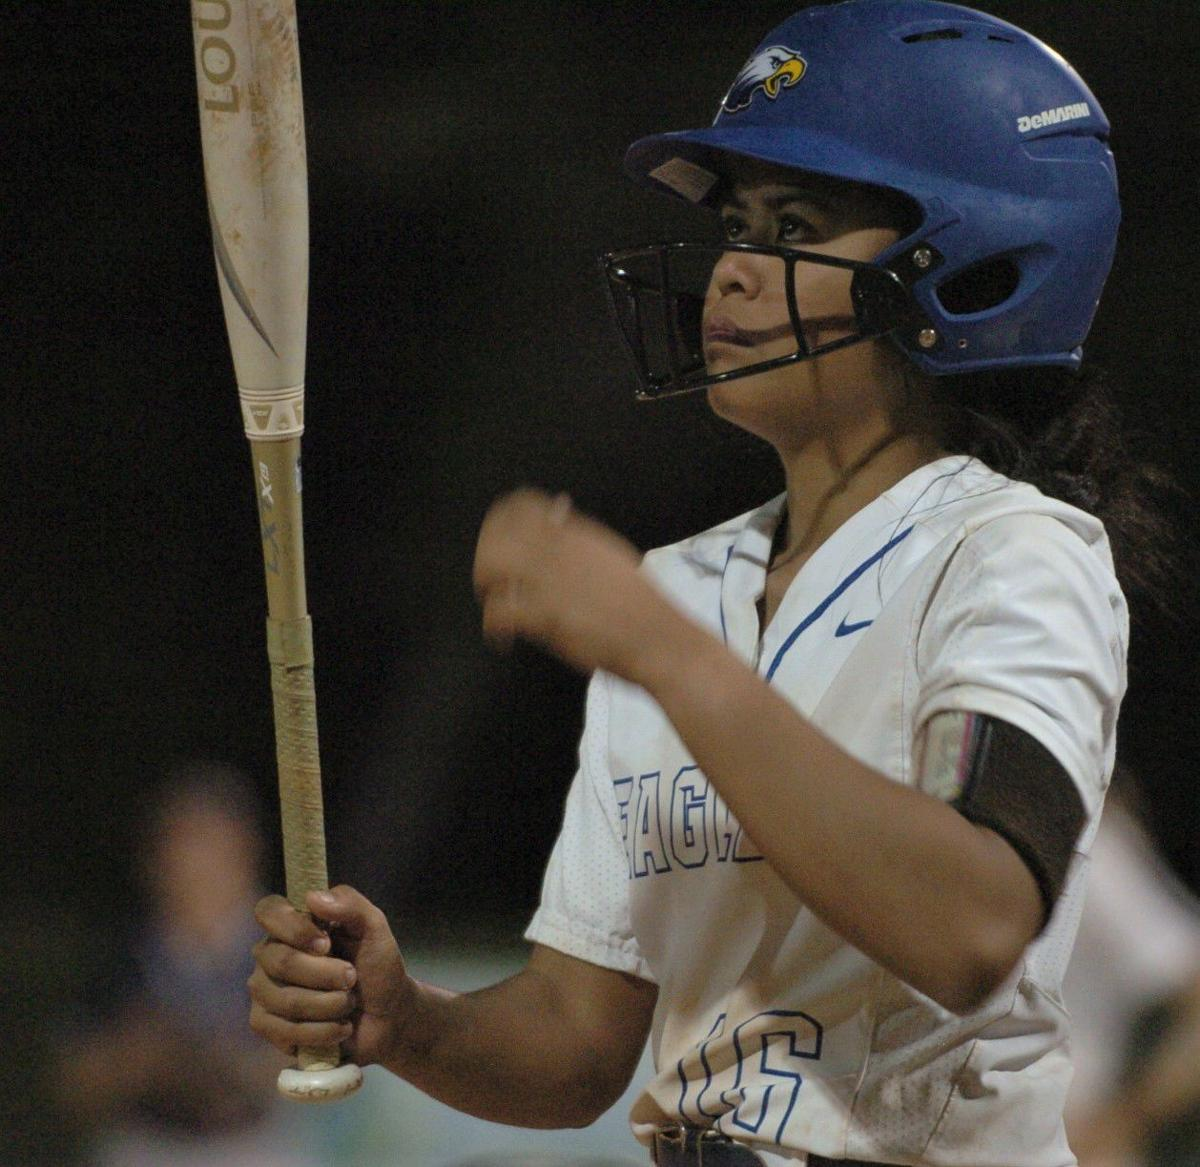 North Pinellas Roundup: Softball districts up next